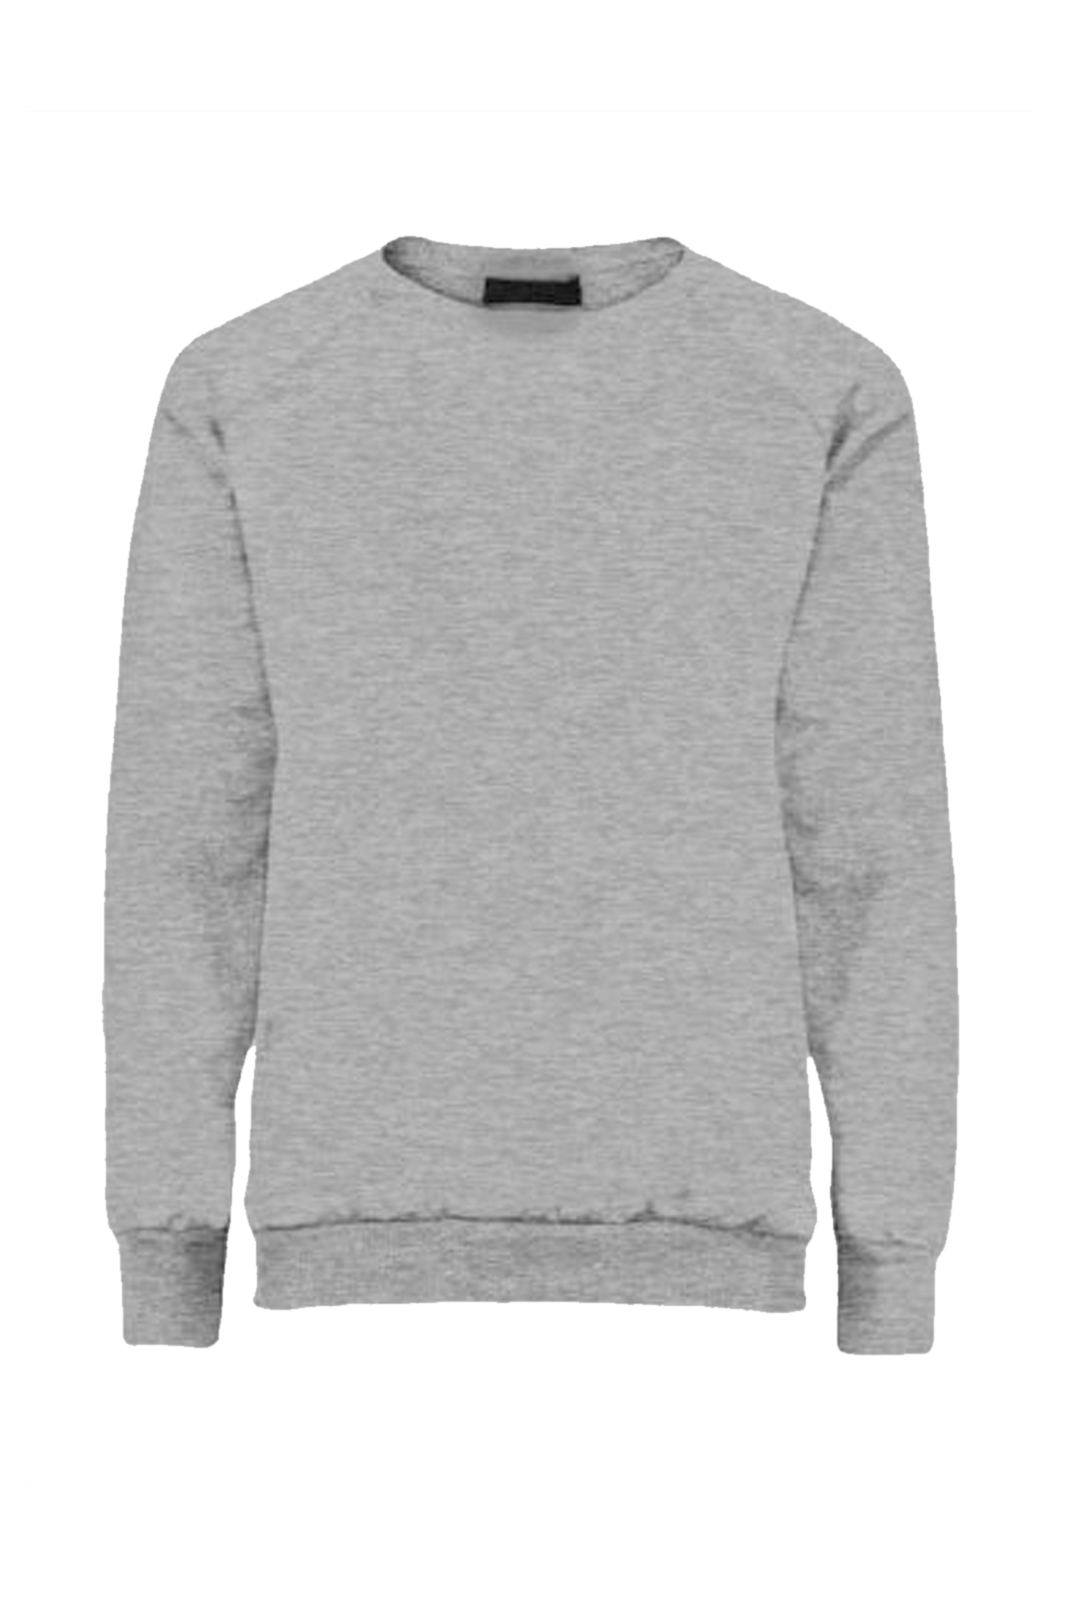 Find Blank Plain Women's Hoodies & Sweatshirts in a variety of colors and styles from slim fit hoodies with a kangaroo pocket & double lined hood to zippered hoodies.